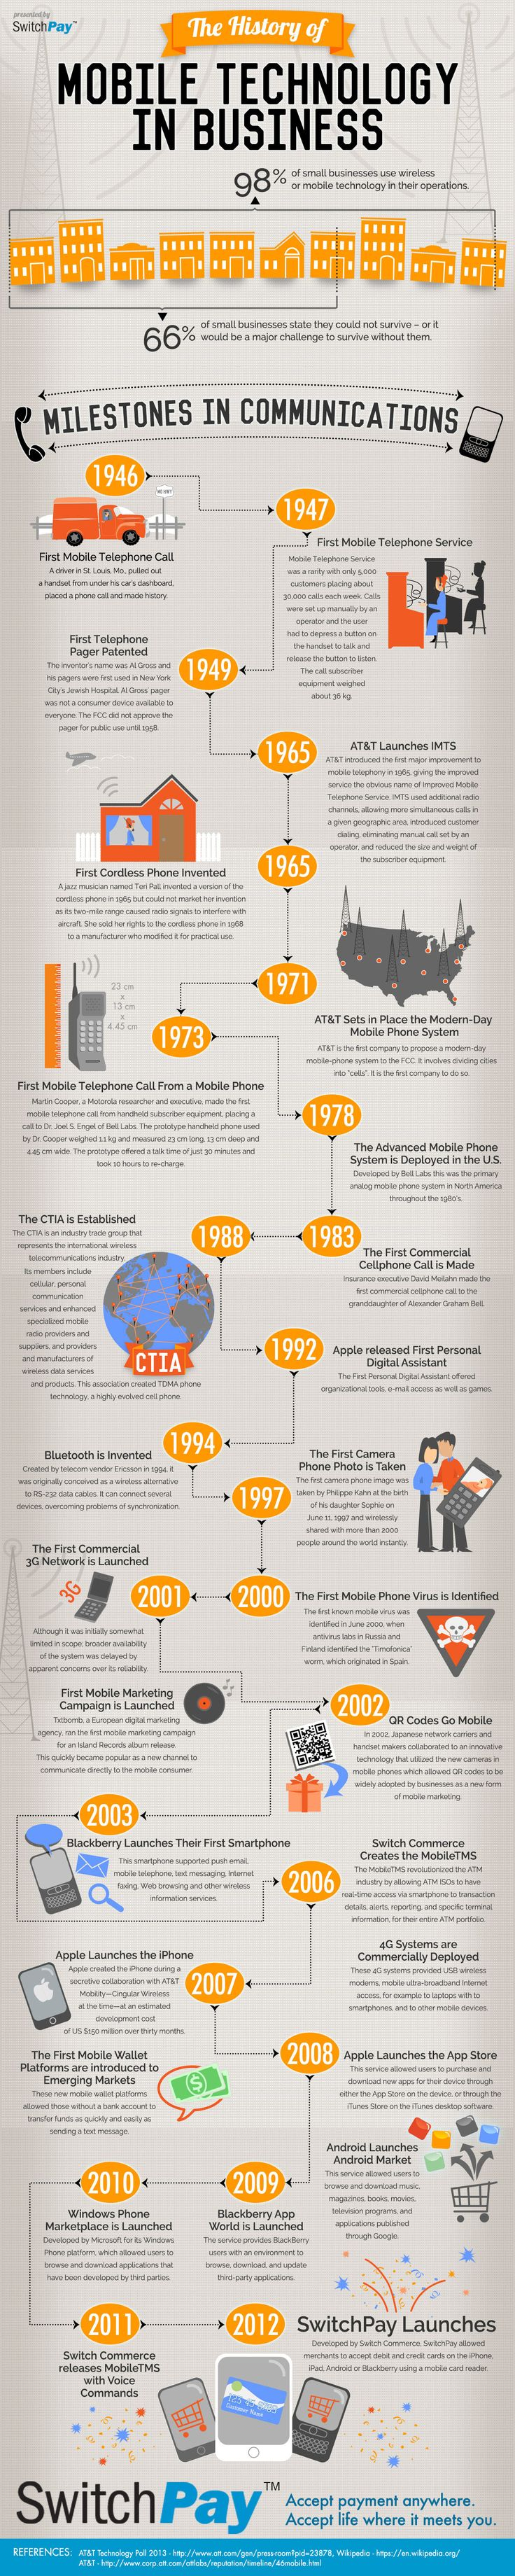 21 best Product History images on Pinterest | Info graphics ...